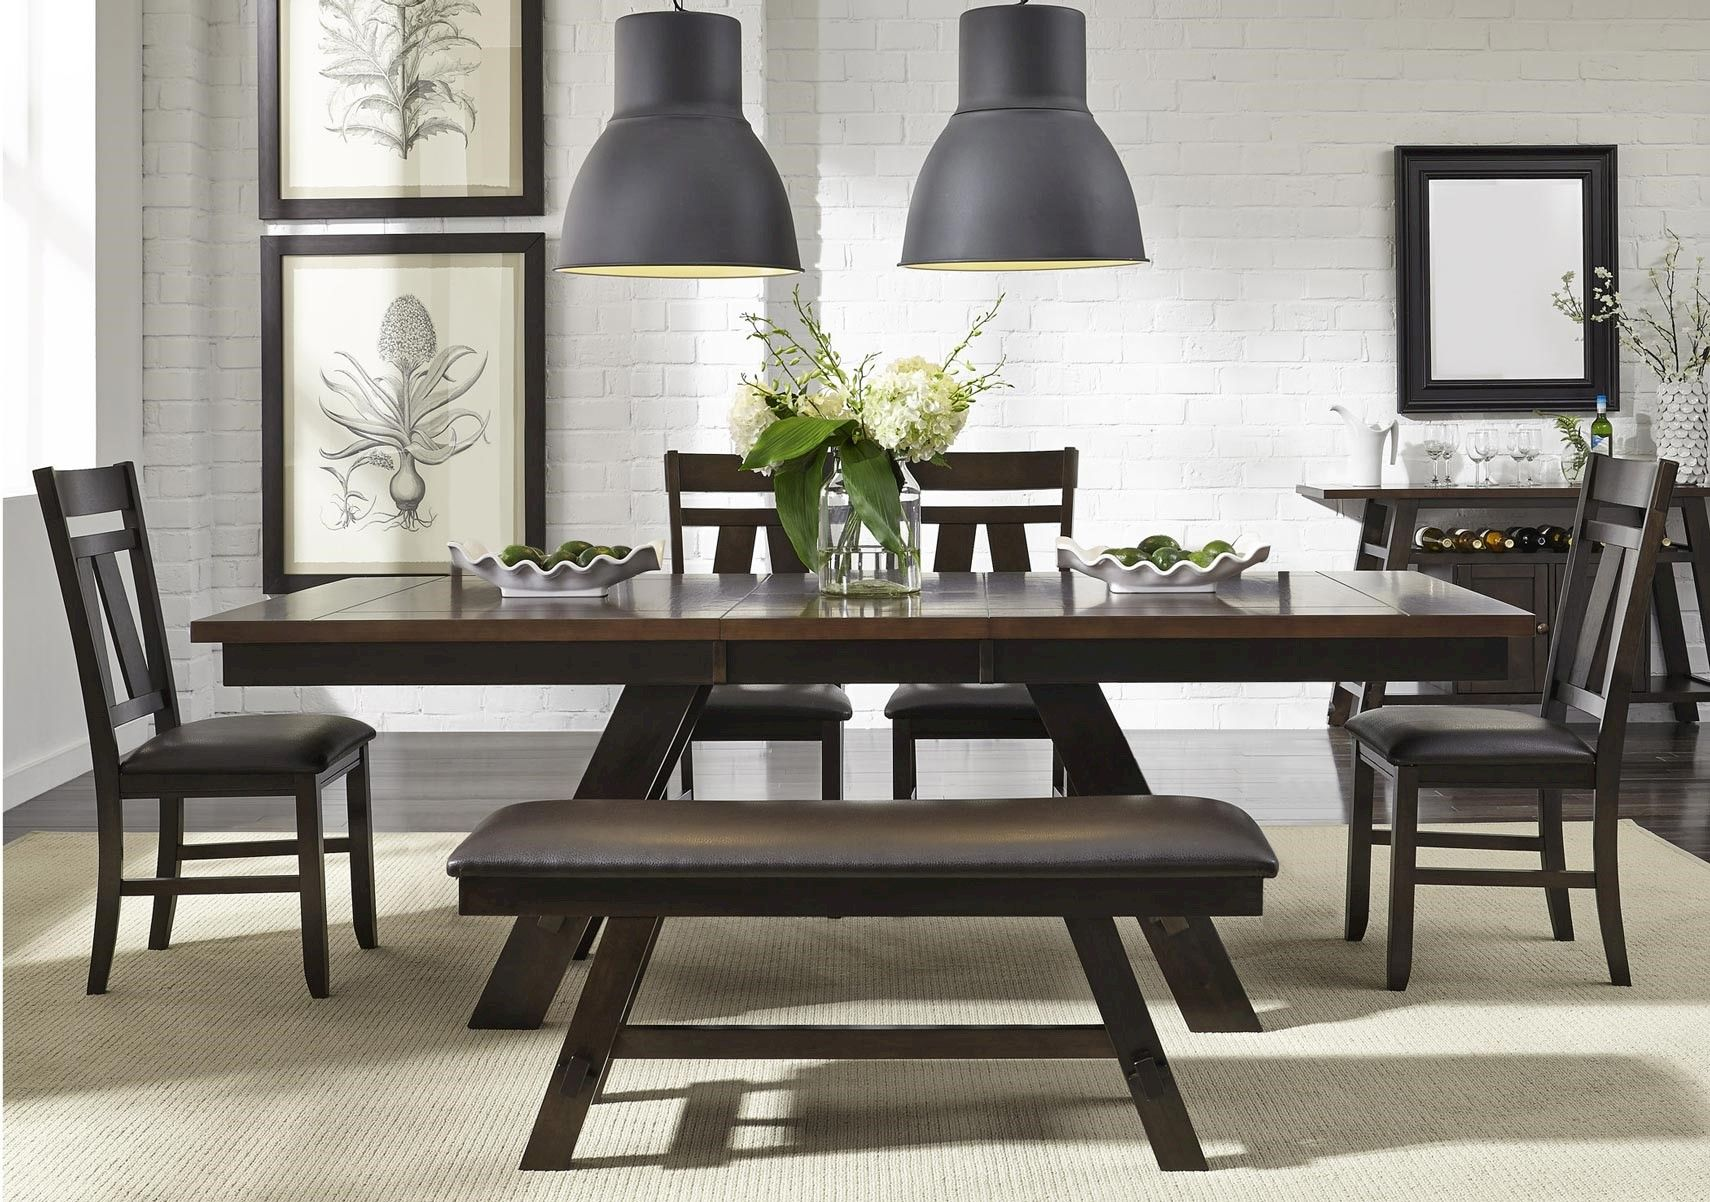 Lacks Lawson 6Pc Dining Set Outdoor furniture stores